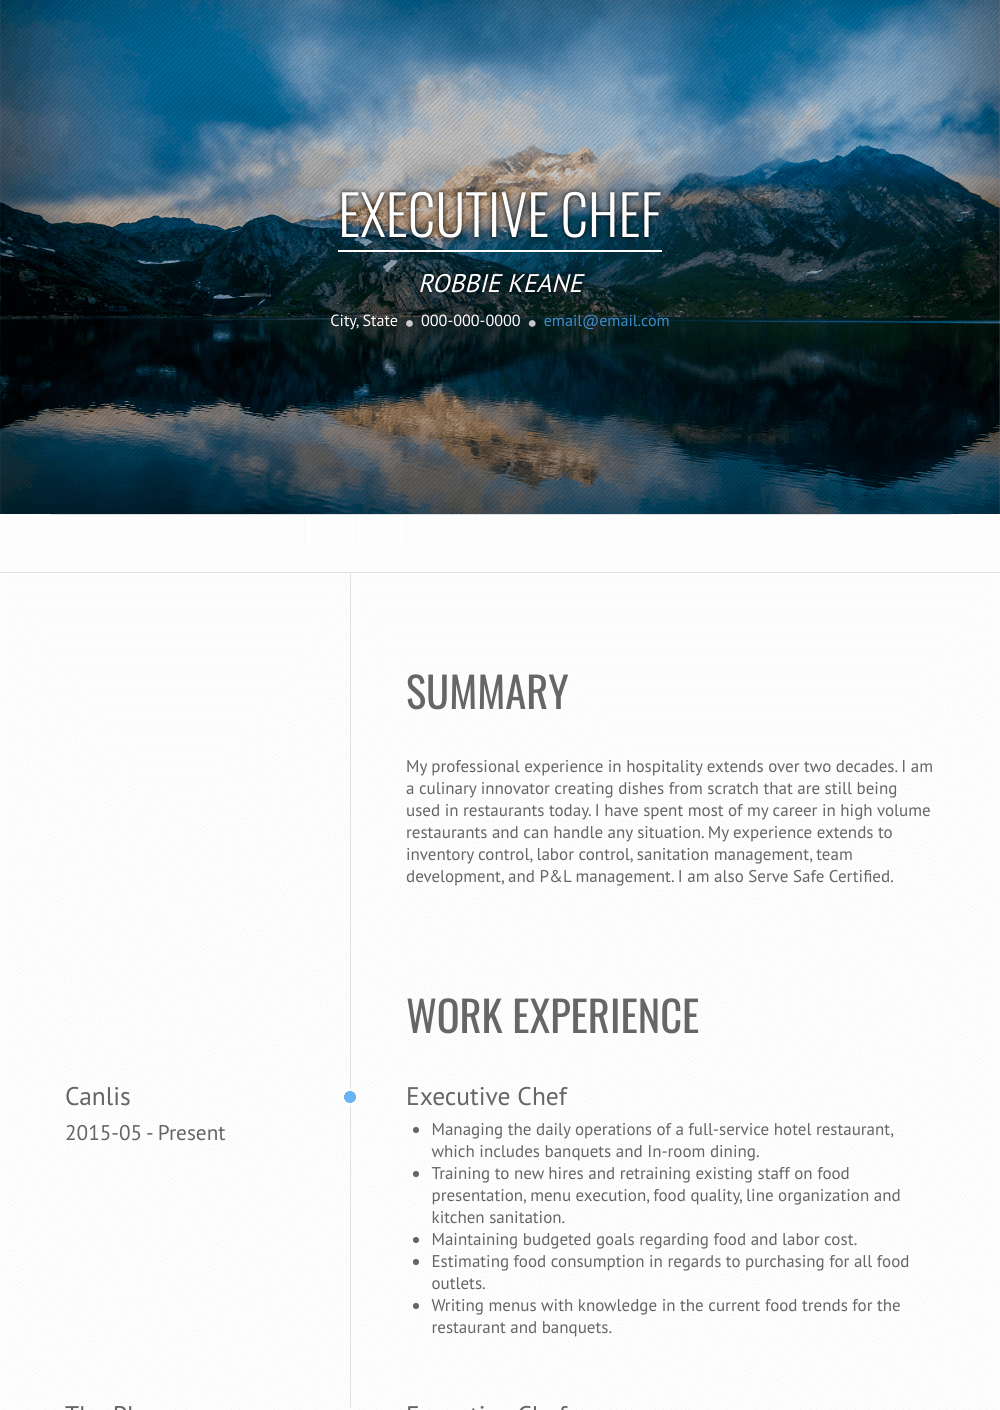 Chef - Resume Samples & Templates | VisualCV